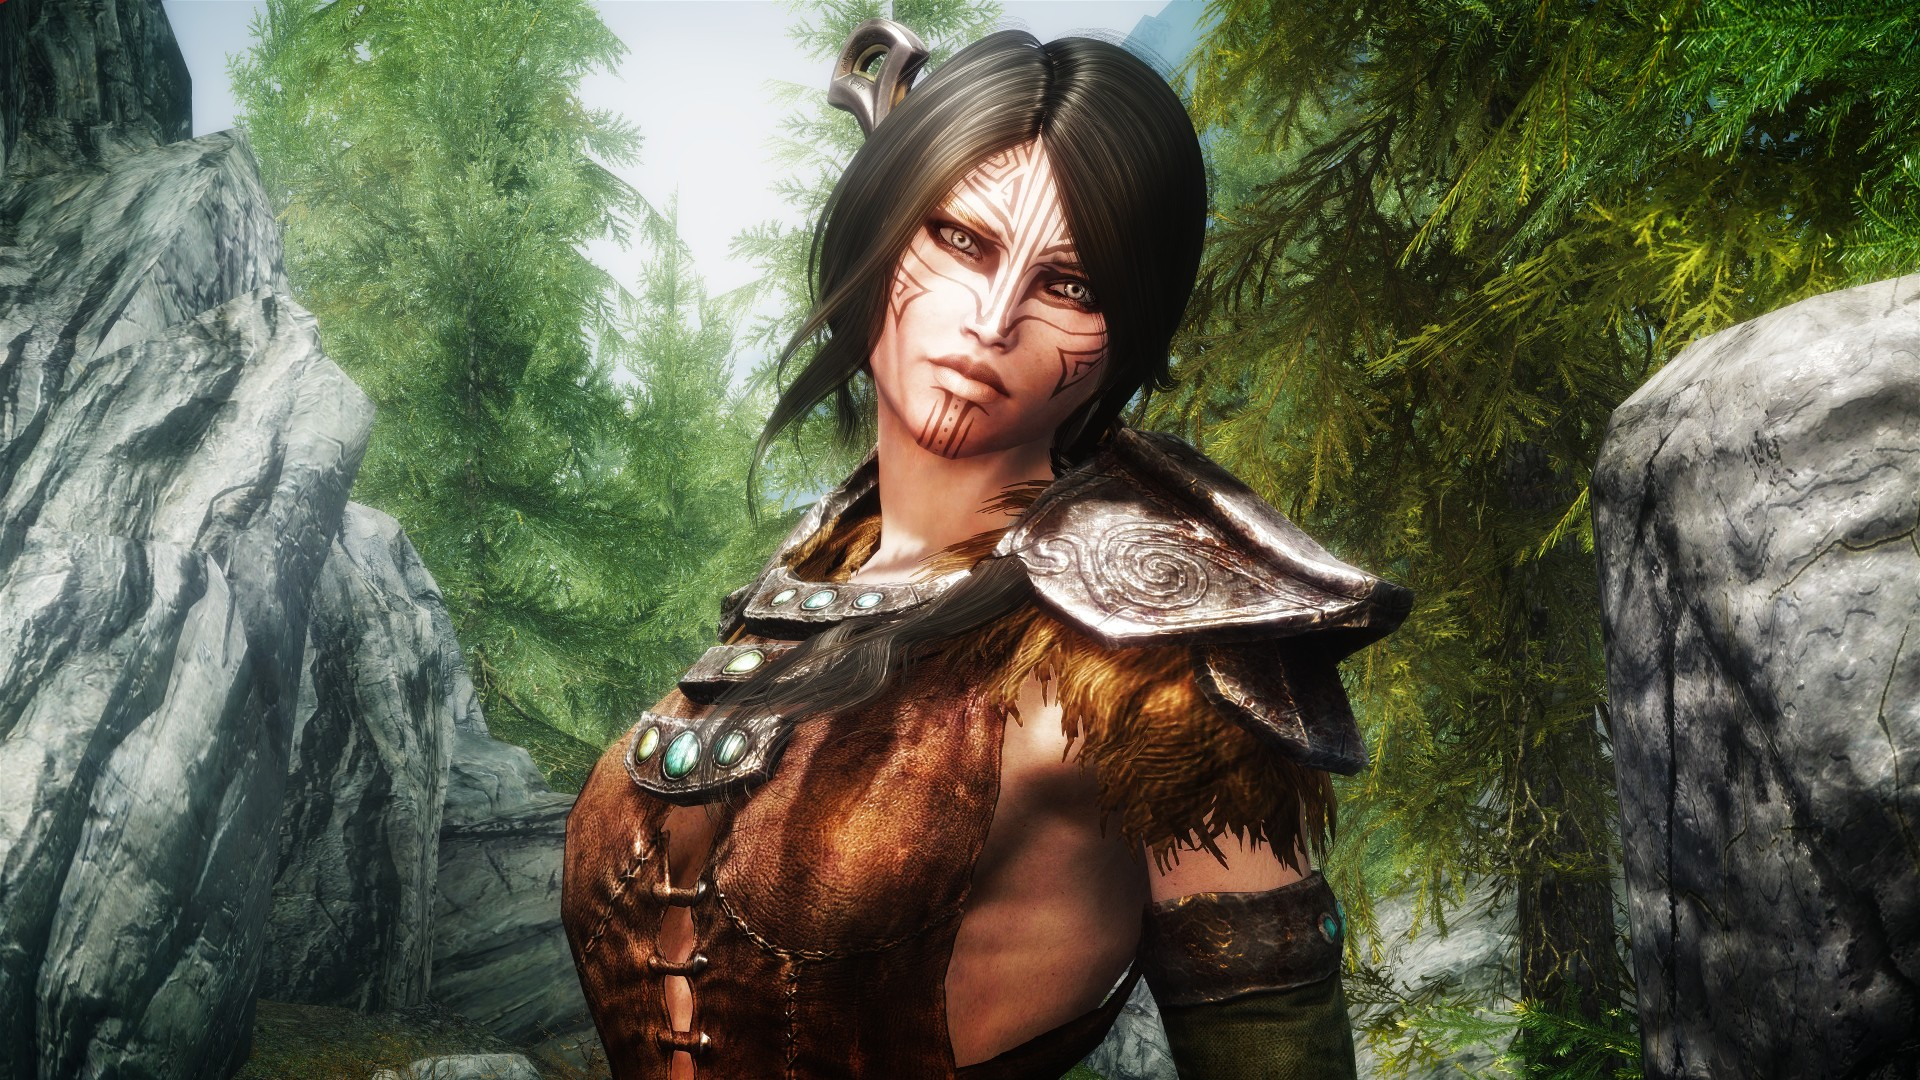 skyrim Full HD Wallpaper and Background | 1920x1200 | ID:339969